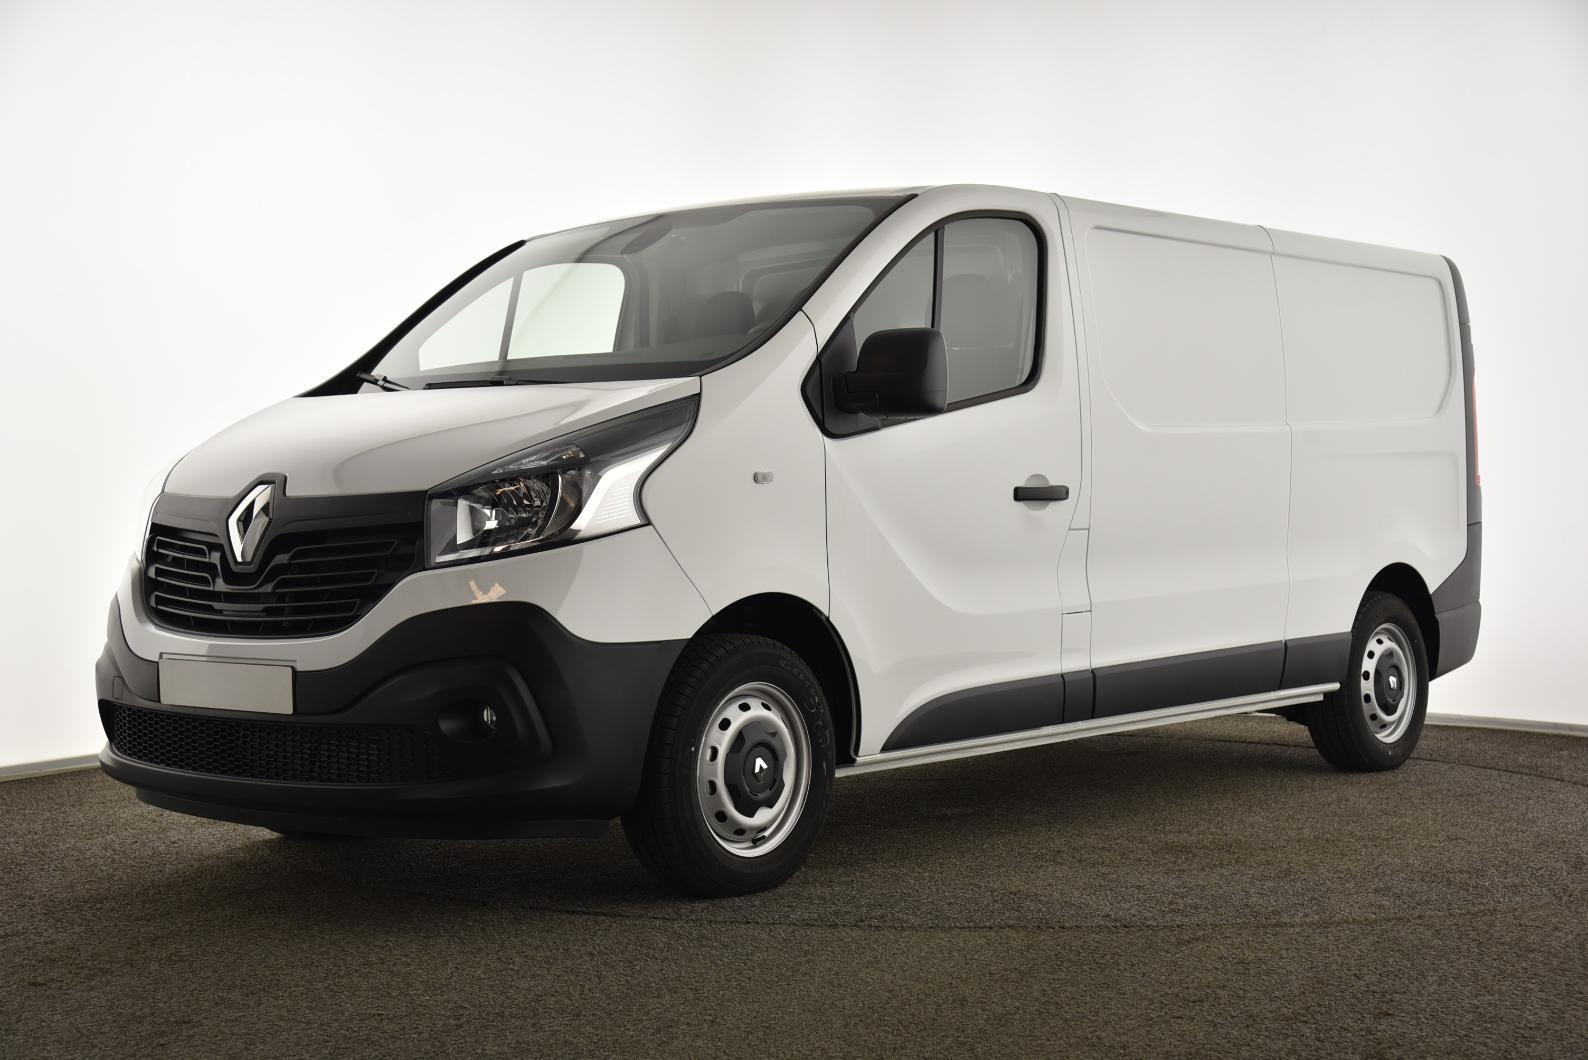 RENAULT TRAFIC FOURGON TRAFIC FGN L2H1 1300 KG DCI 125 ENERGY E6 CONFORT